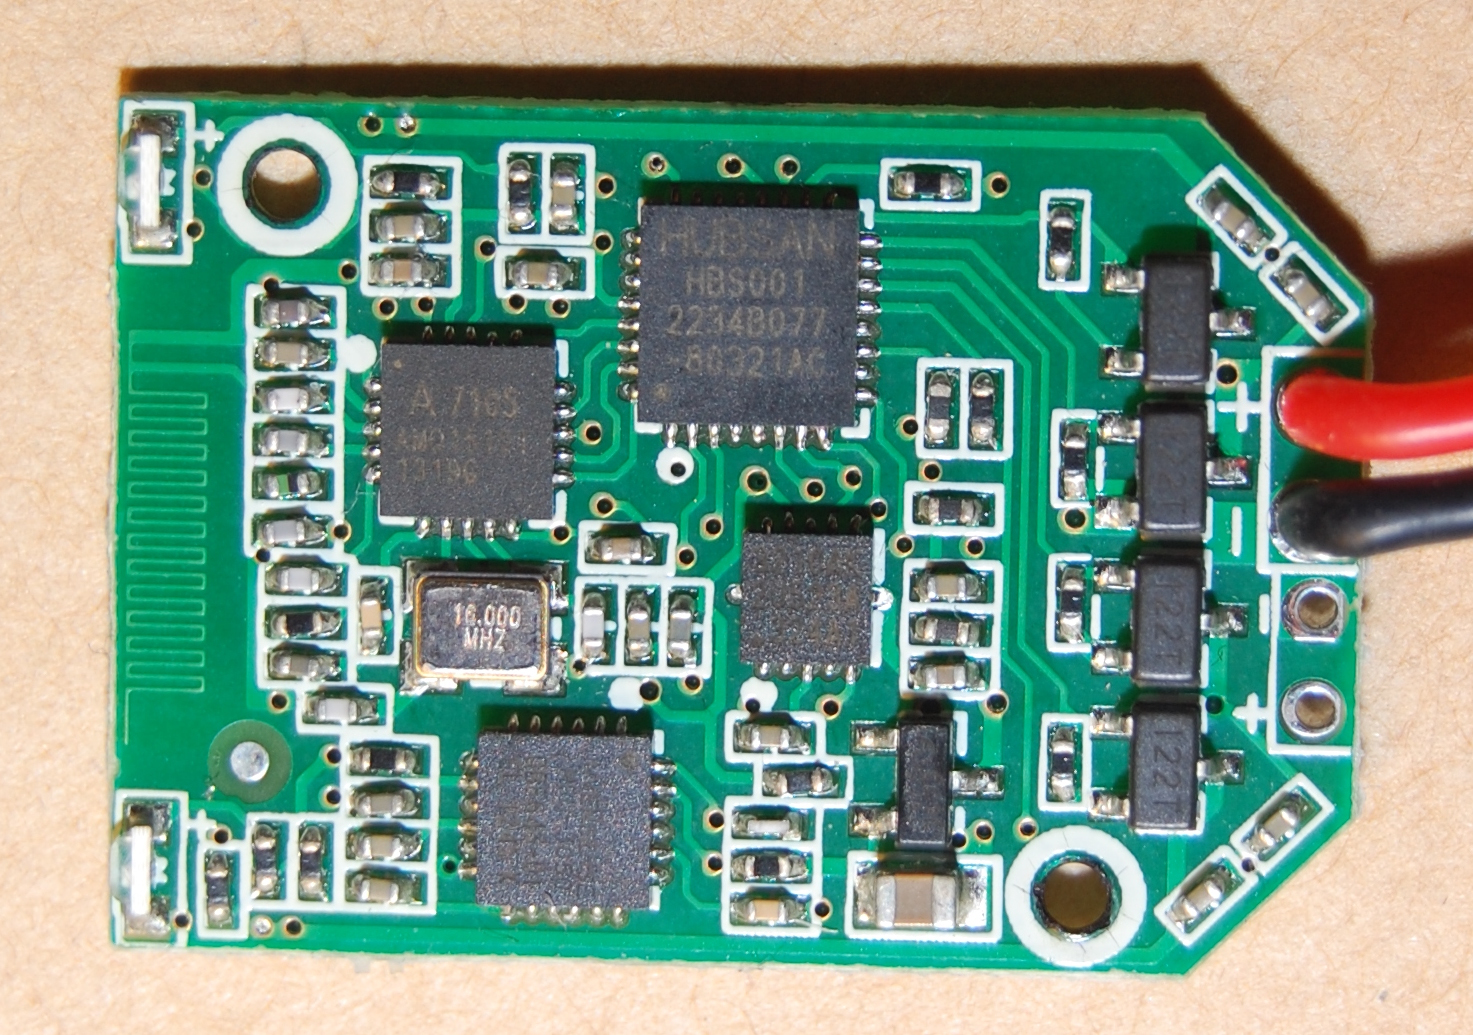 pcb_top_overview github lgeek h107_rev reverse engineering hubsan h107* micro hubsan x4 wiring diagram at gsmx.co